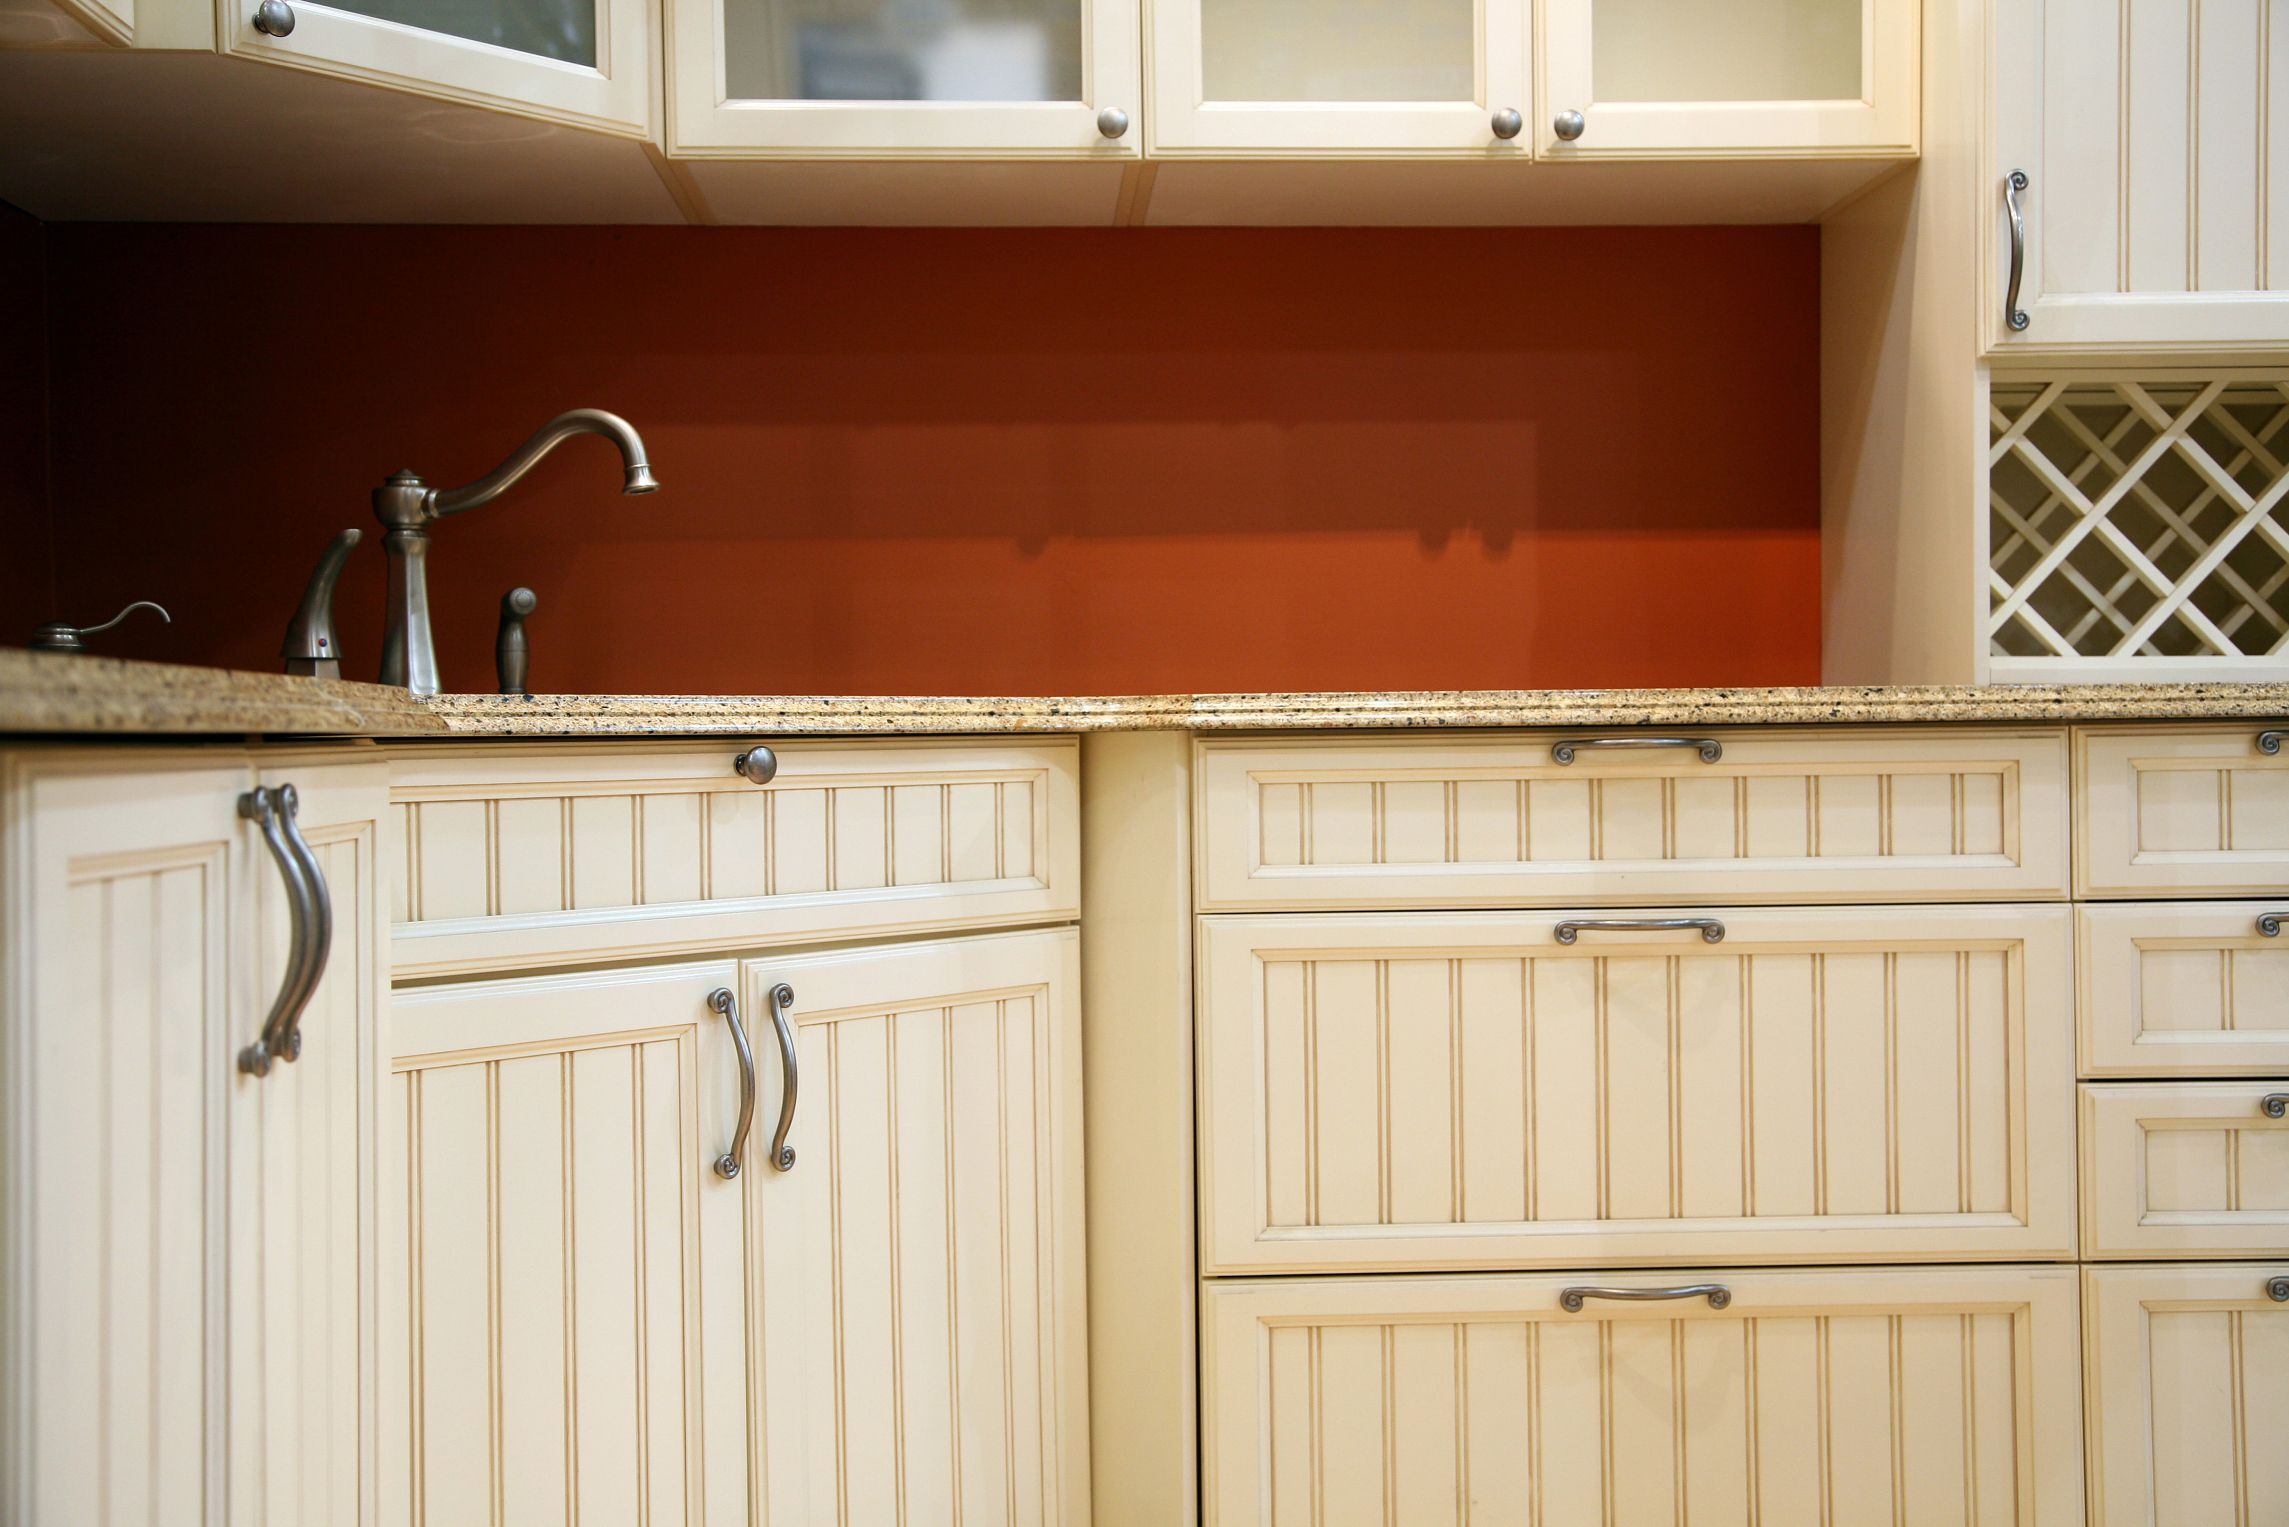 Use Beadboard To Make Matching Drawer Face Plates Beadboard Kitchen Beadboard Kitchen Cabinets Whitewash Kitchen Cabinets